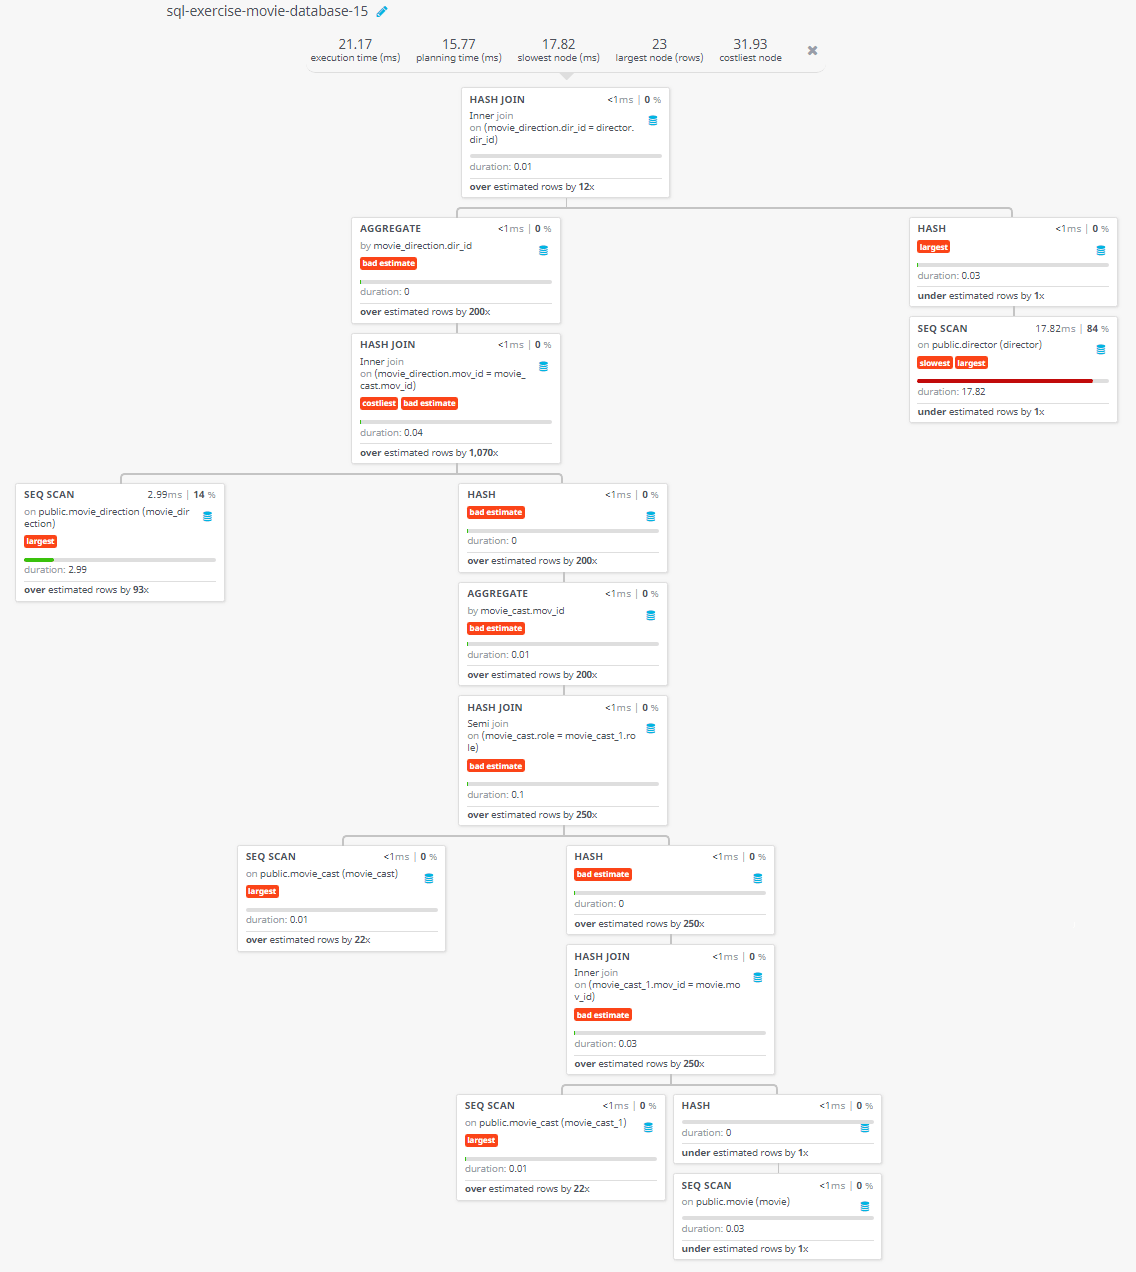 Query visualization of Find the name of the director who directed a movie that casted a role for 'Eyes Wide Shut' - Duration